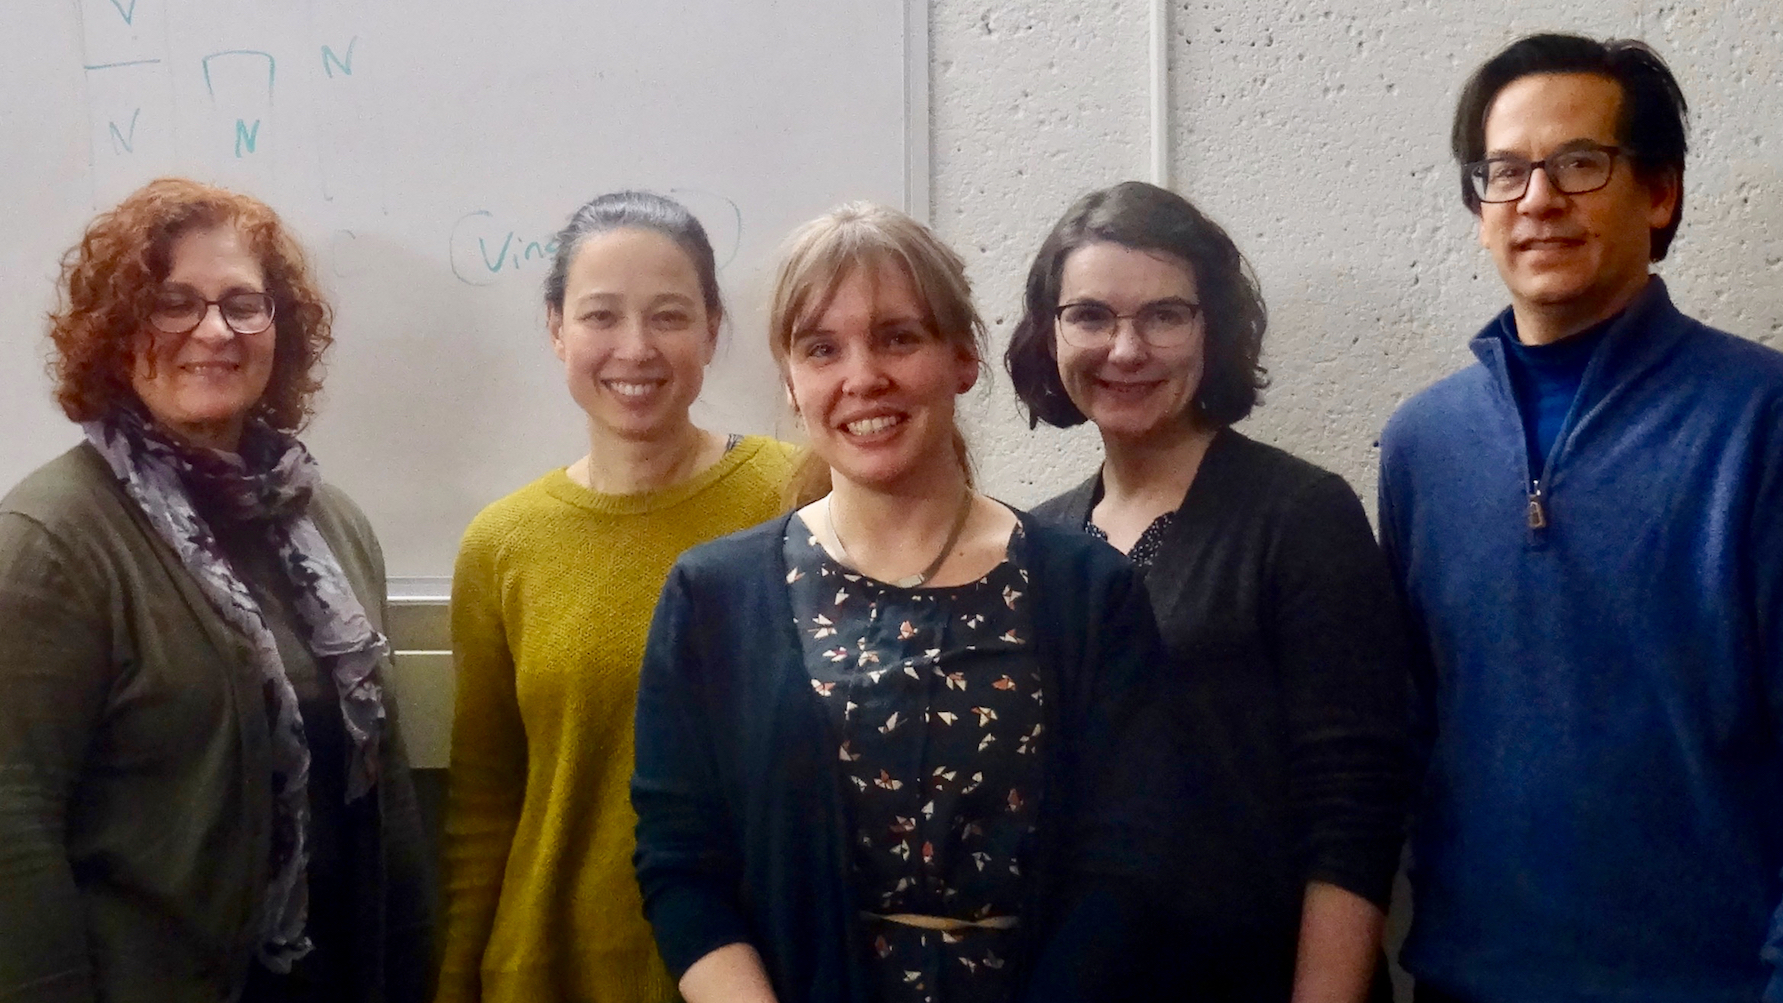 PhD student Annmarie van Dooren, flanked by the members of her qualifying committee, all smiling for the camera in commemoration of a successful oral defense